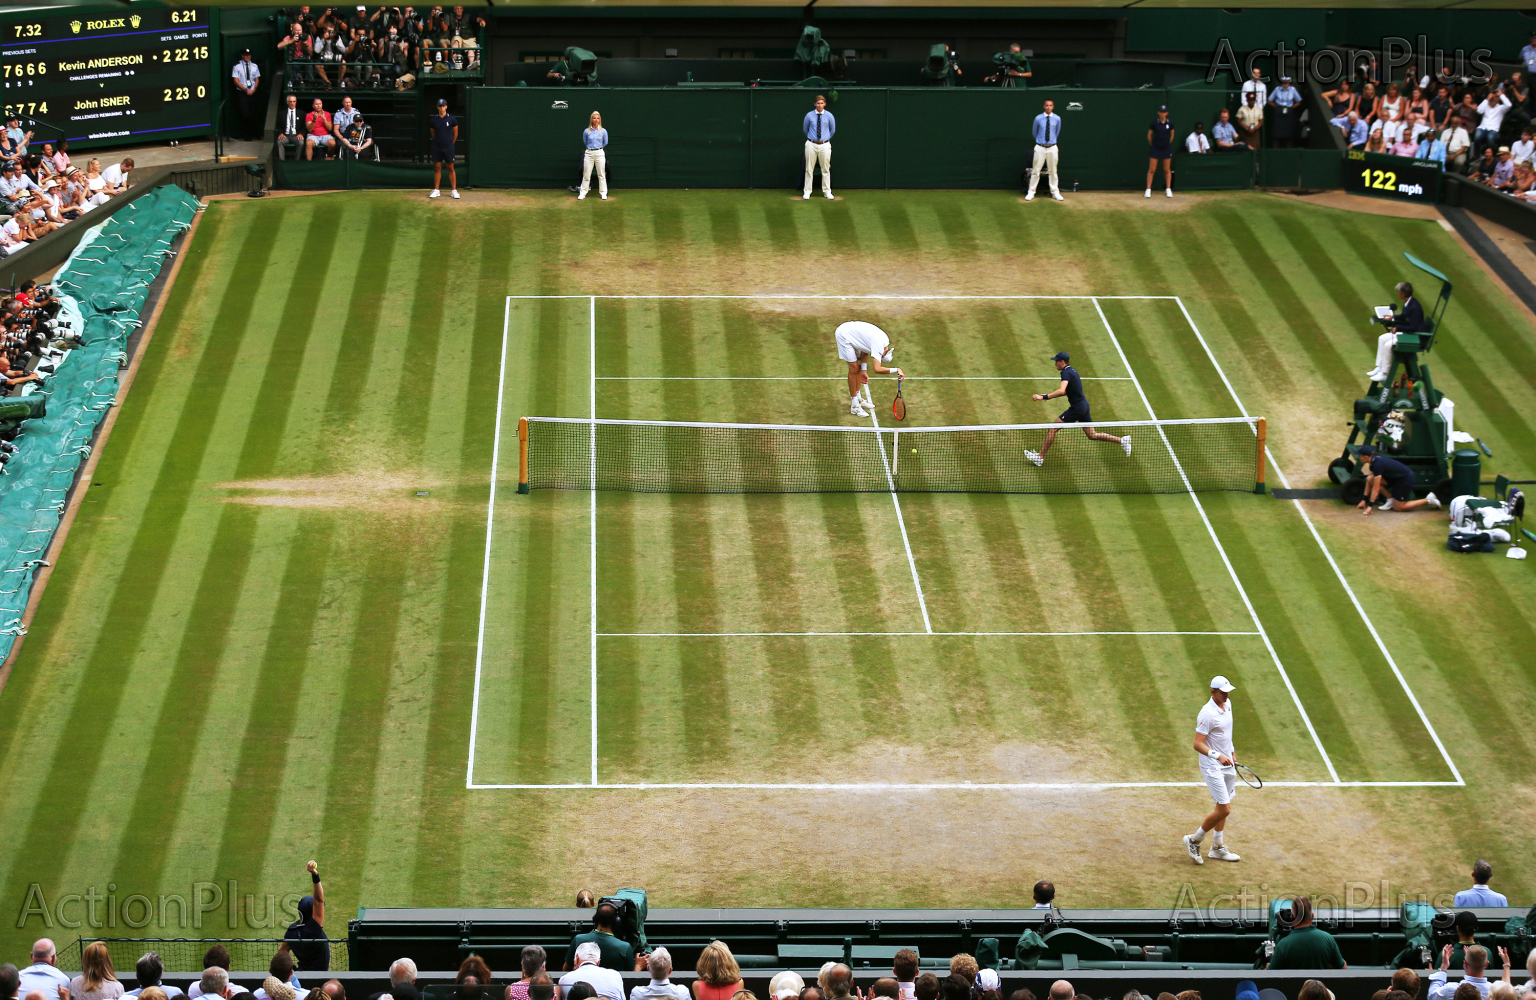 John Isner bent over exhausted at Centre Court against Kevin Anderson in what has become Wimbledon's 2nd longest match in history. Note the time at 6 hours and 21 minutes top right of the scoreboard.